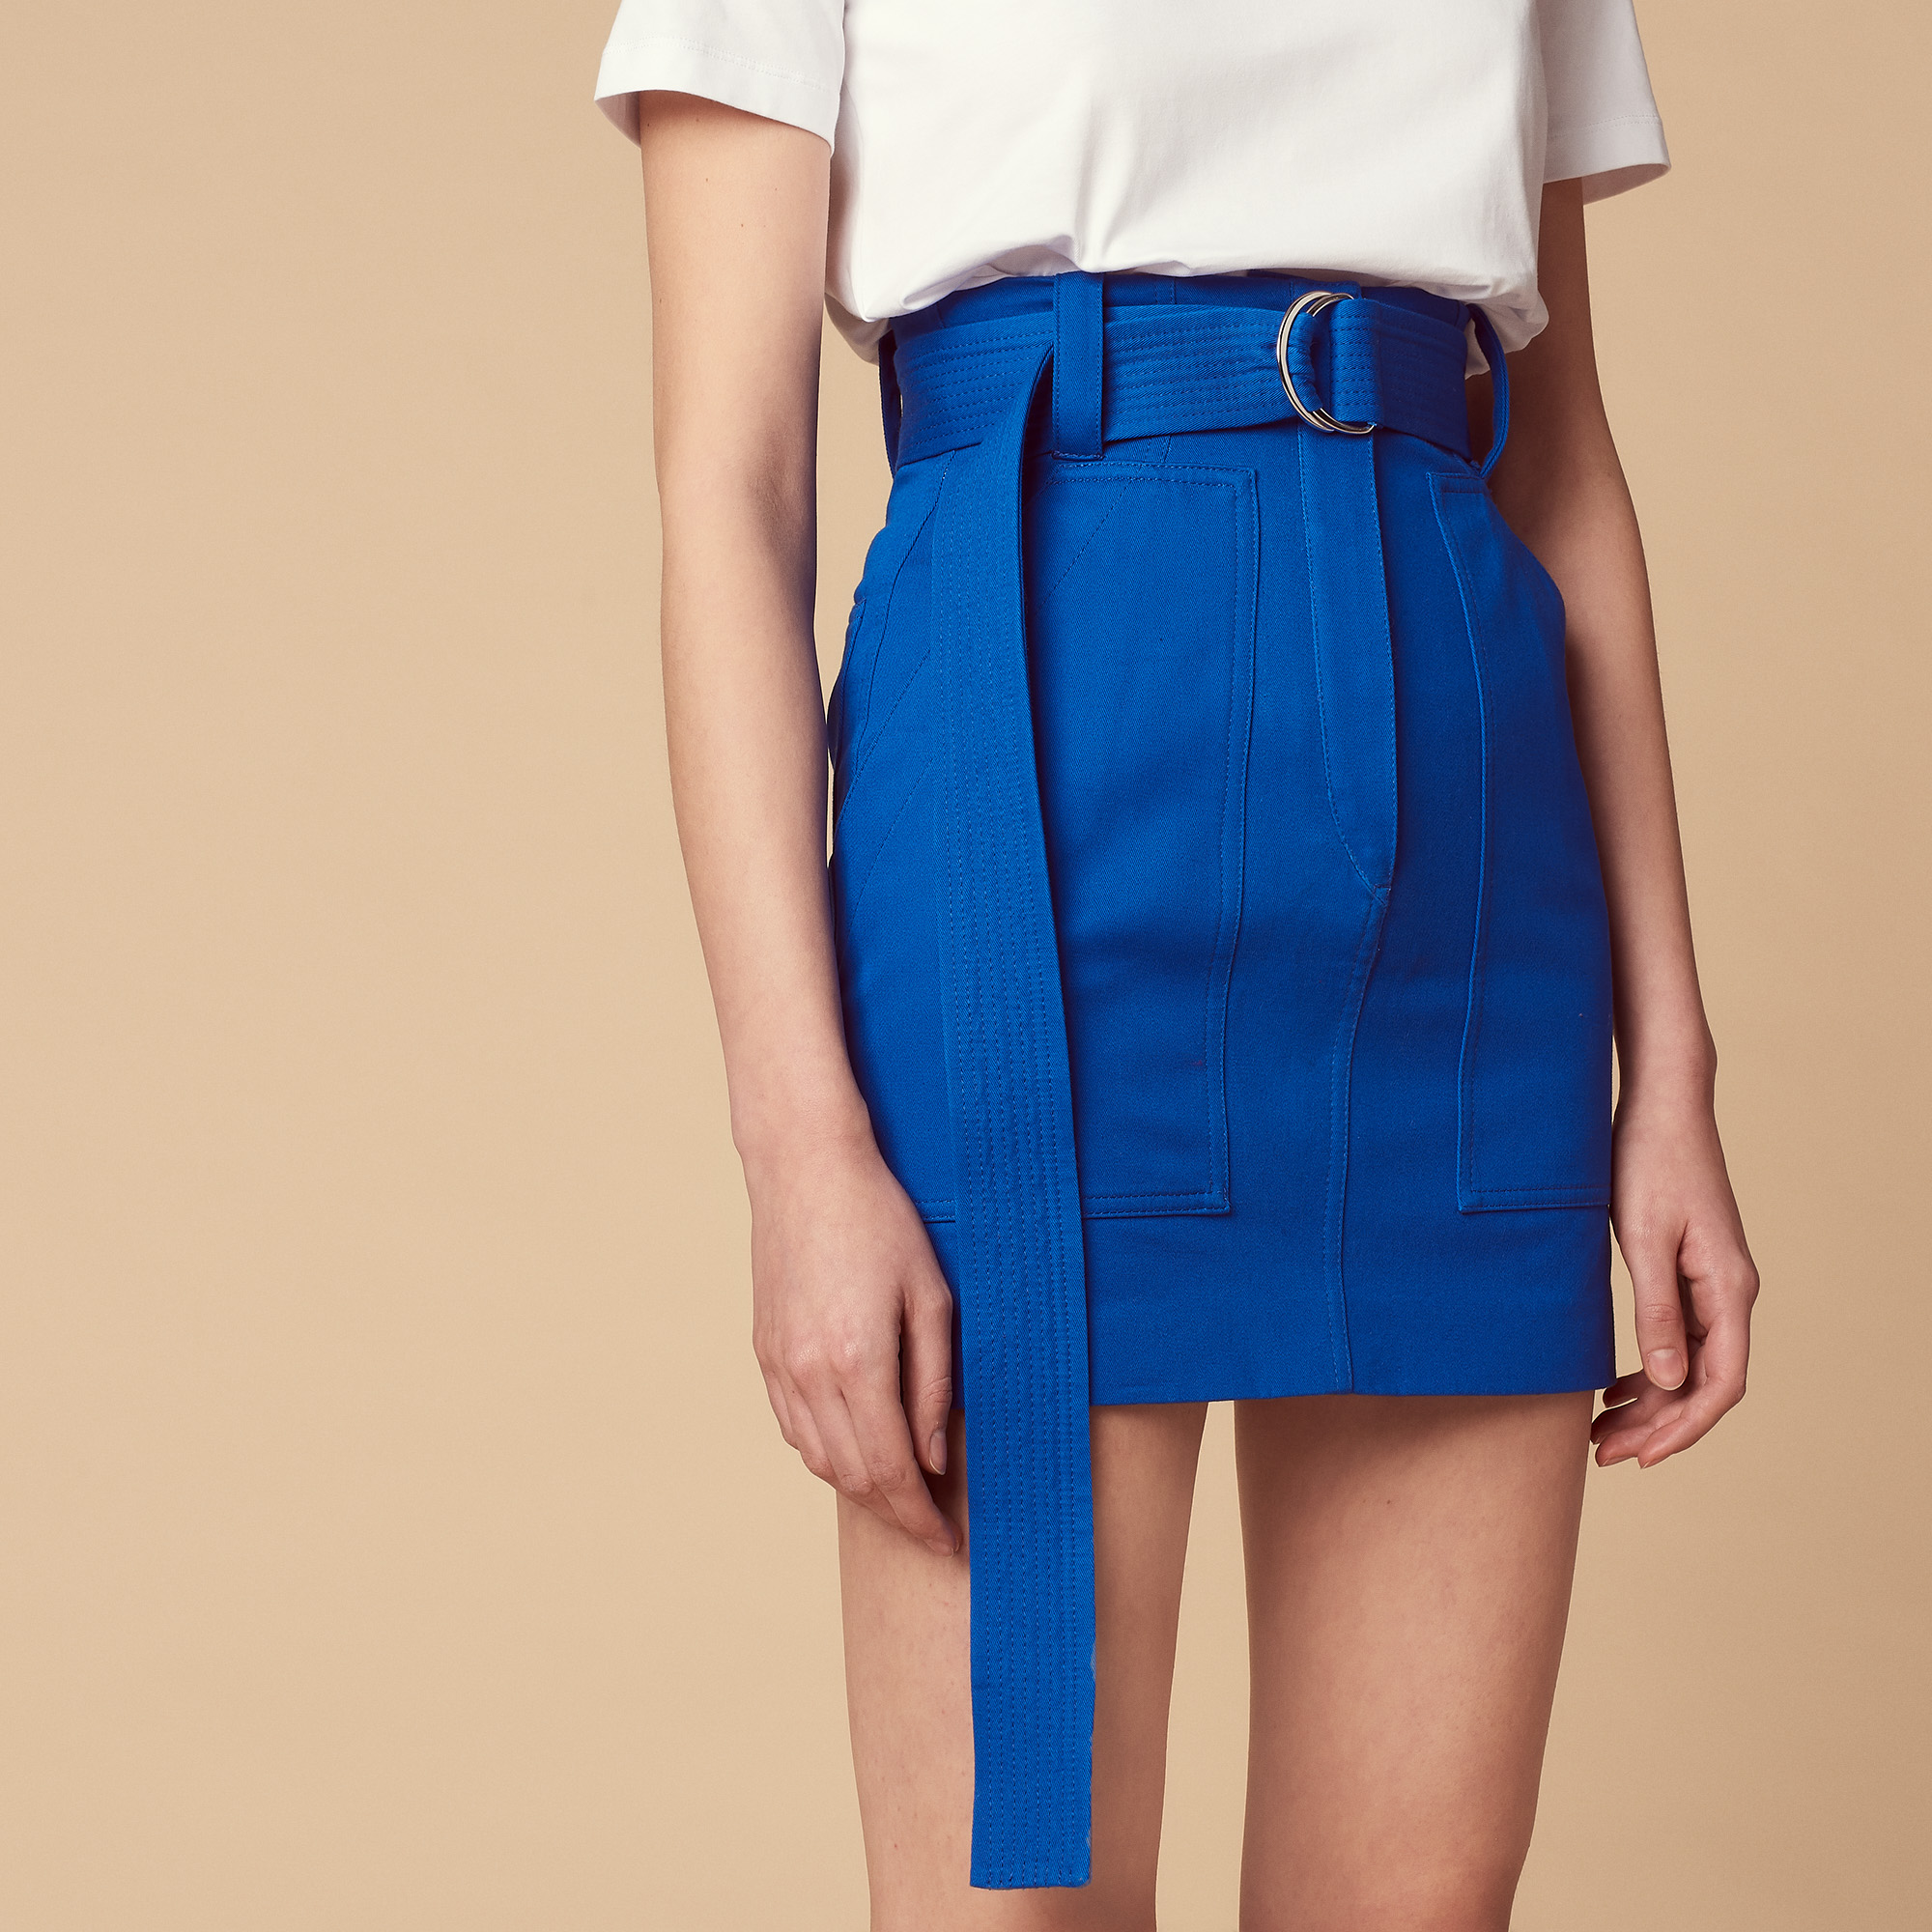 Gonna corta con cintura : Gonne & Short colore Blu